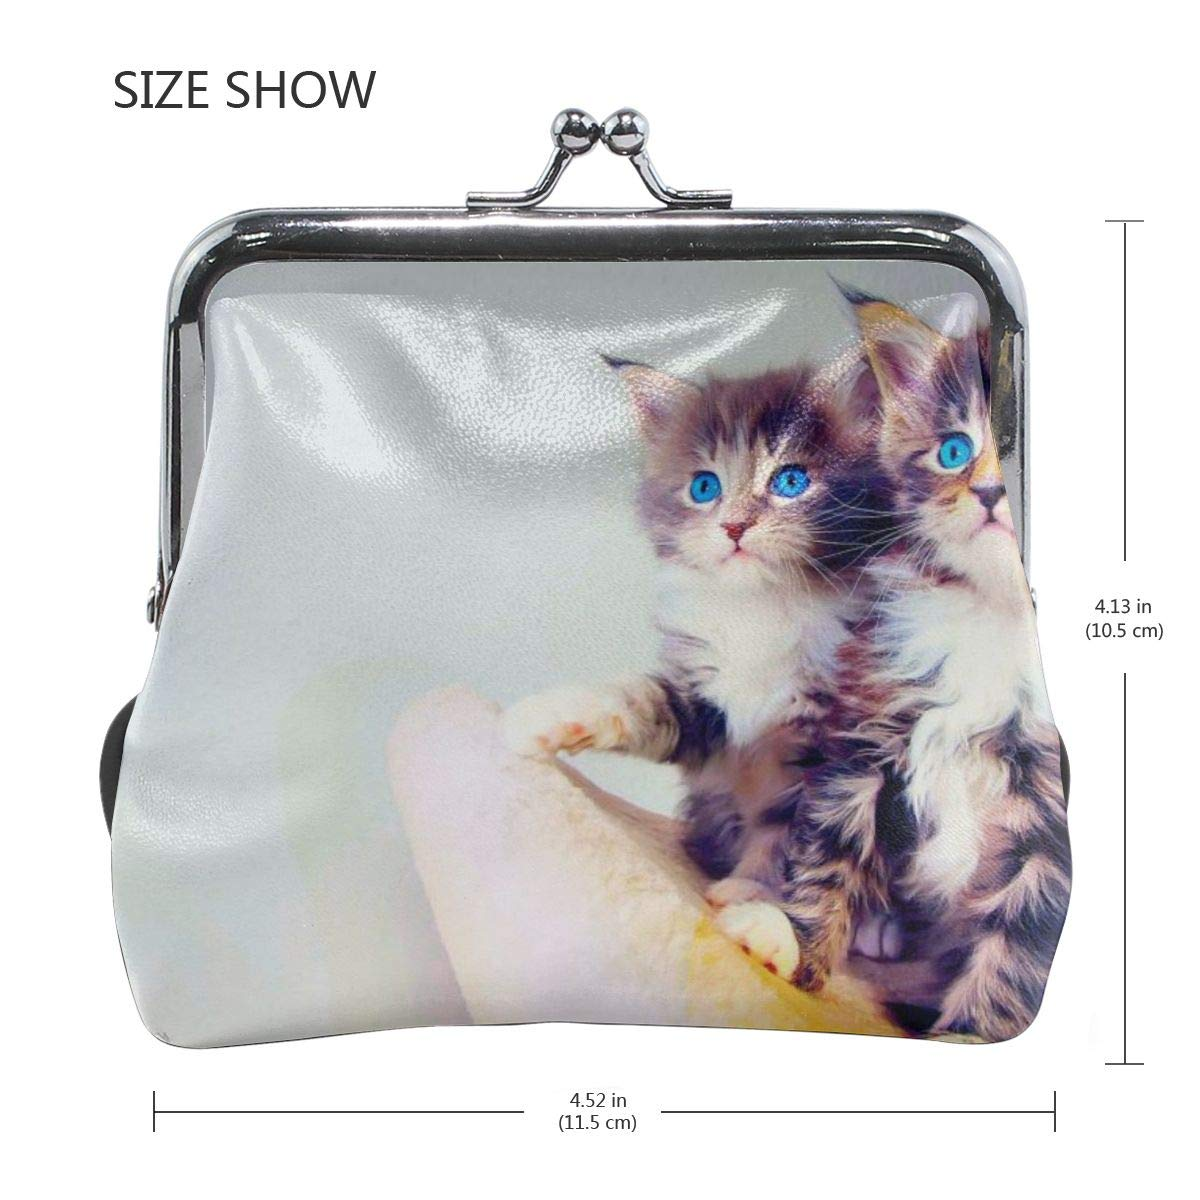 Poream Animal Cat Kitten Retro Leather Cute Classic Floral Coin Purse Clutch Pouch Wallet For Girls And Womens